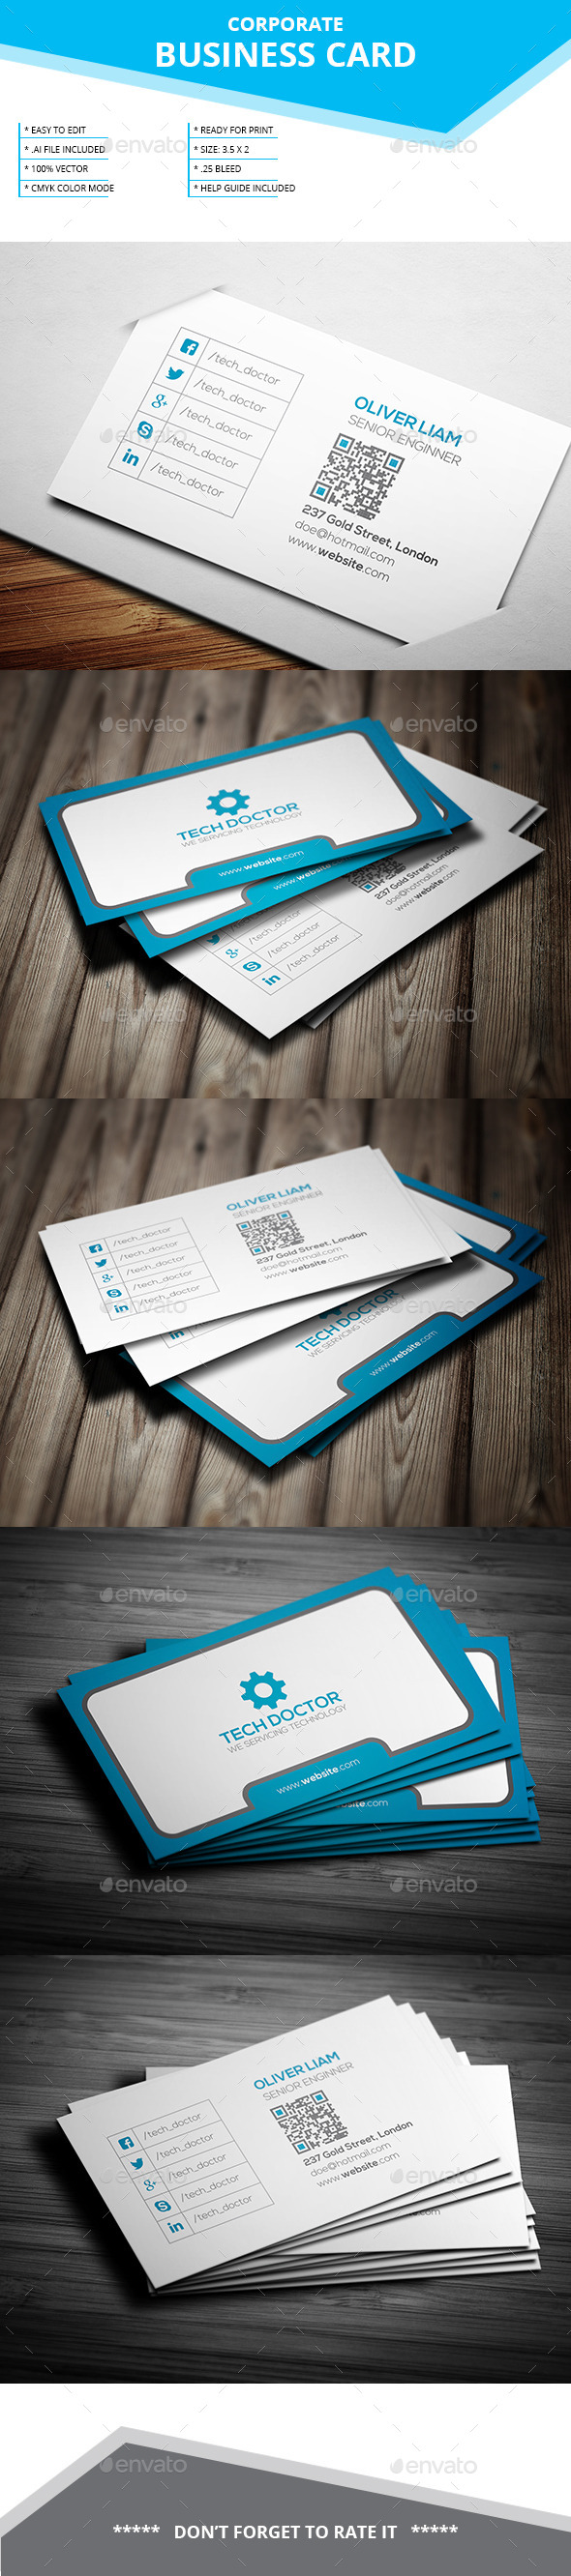 Corporate Business Card Vol-26